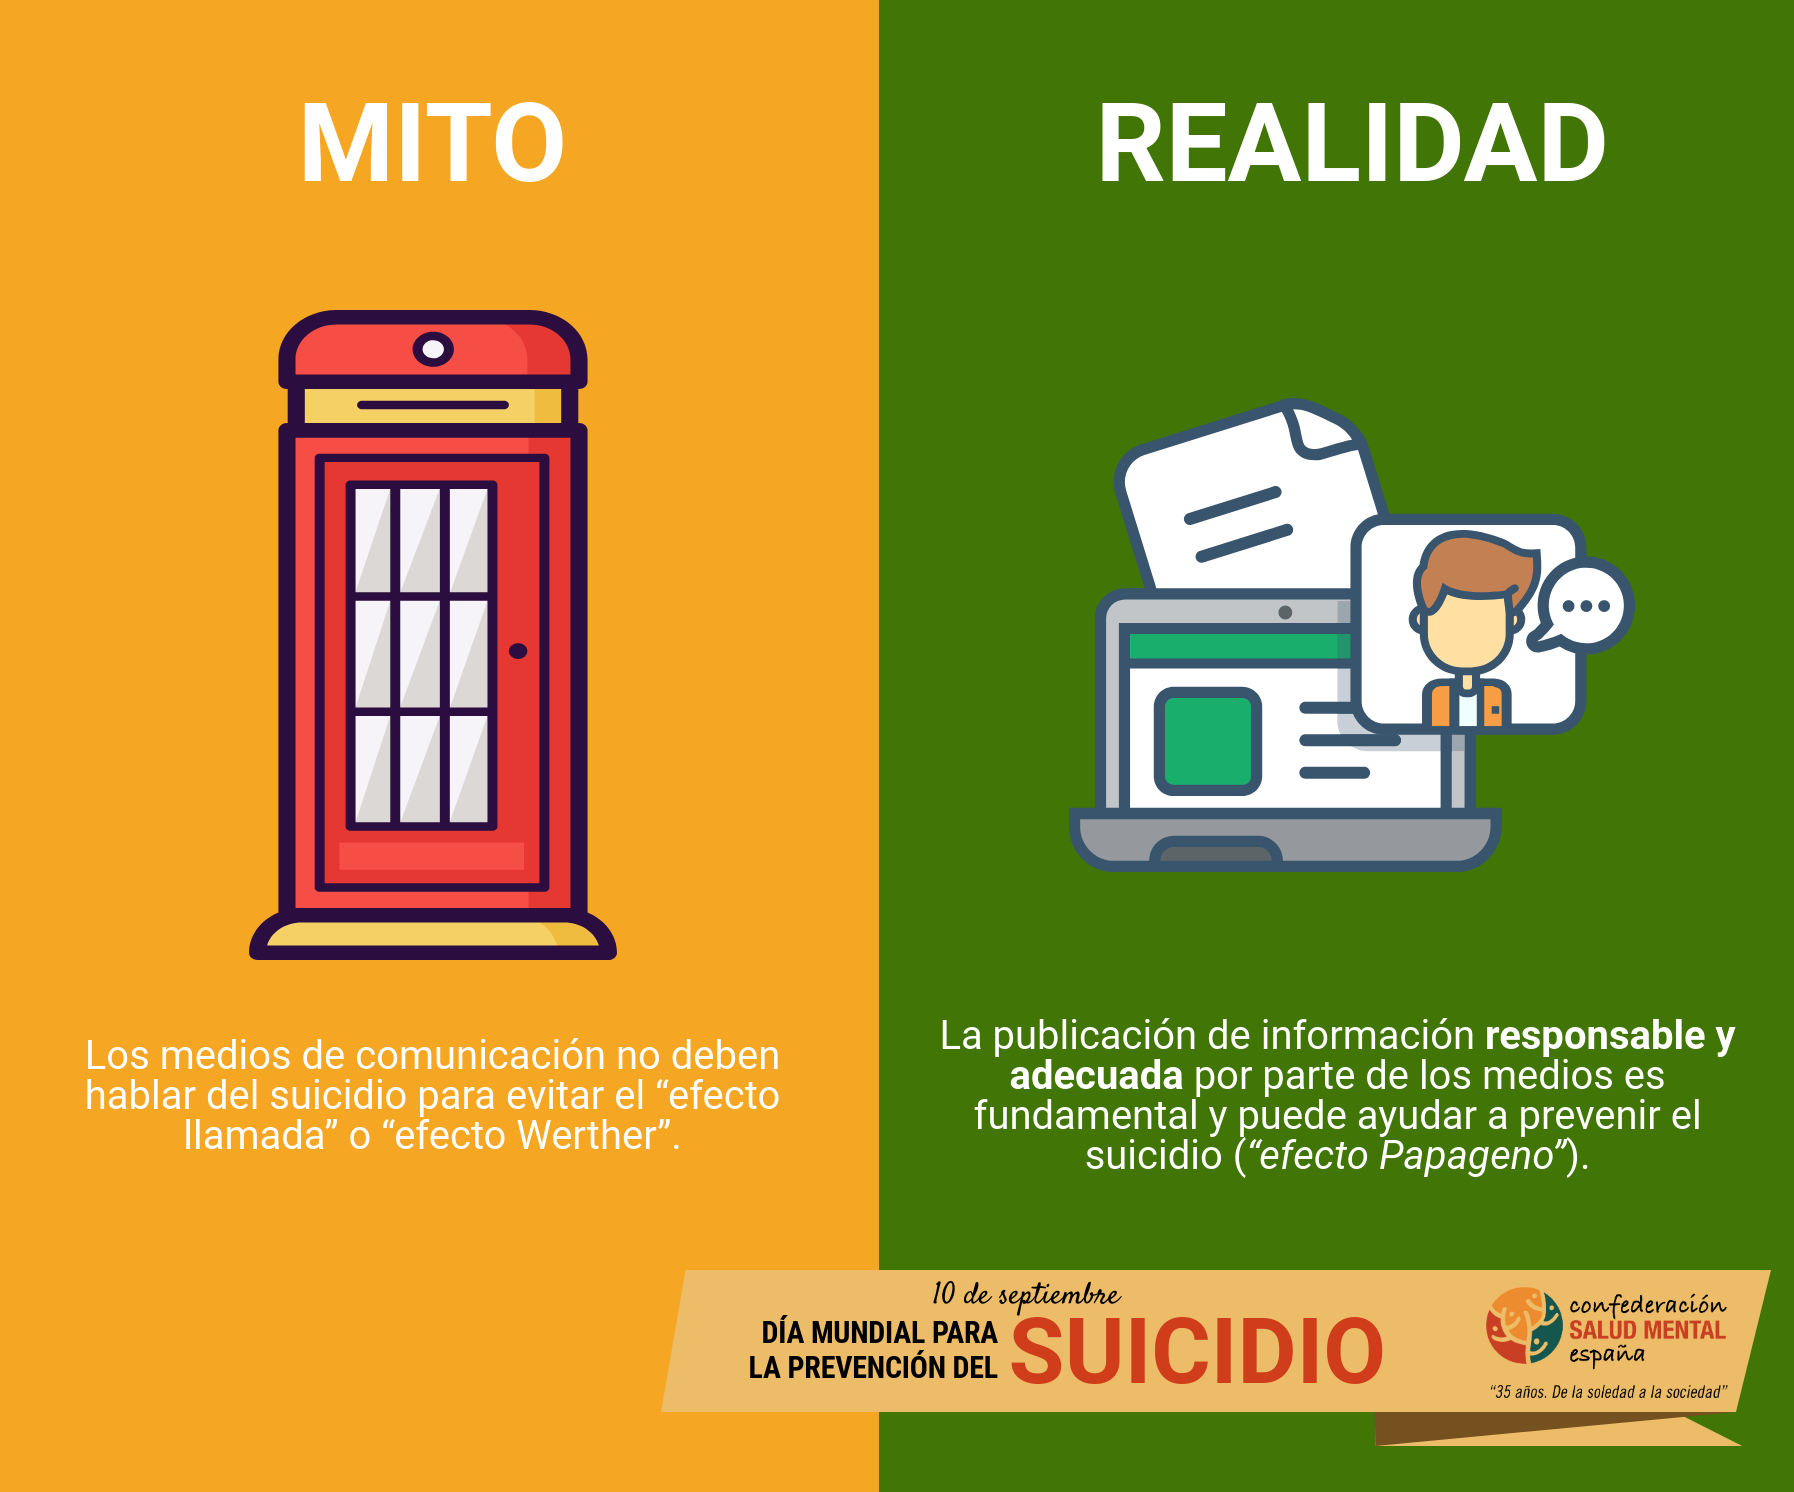 https://consaludmental.org/wp-content/uploads/2018/09/Suicidio-Mito-vs-realidad-4.png